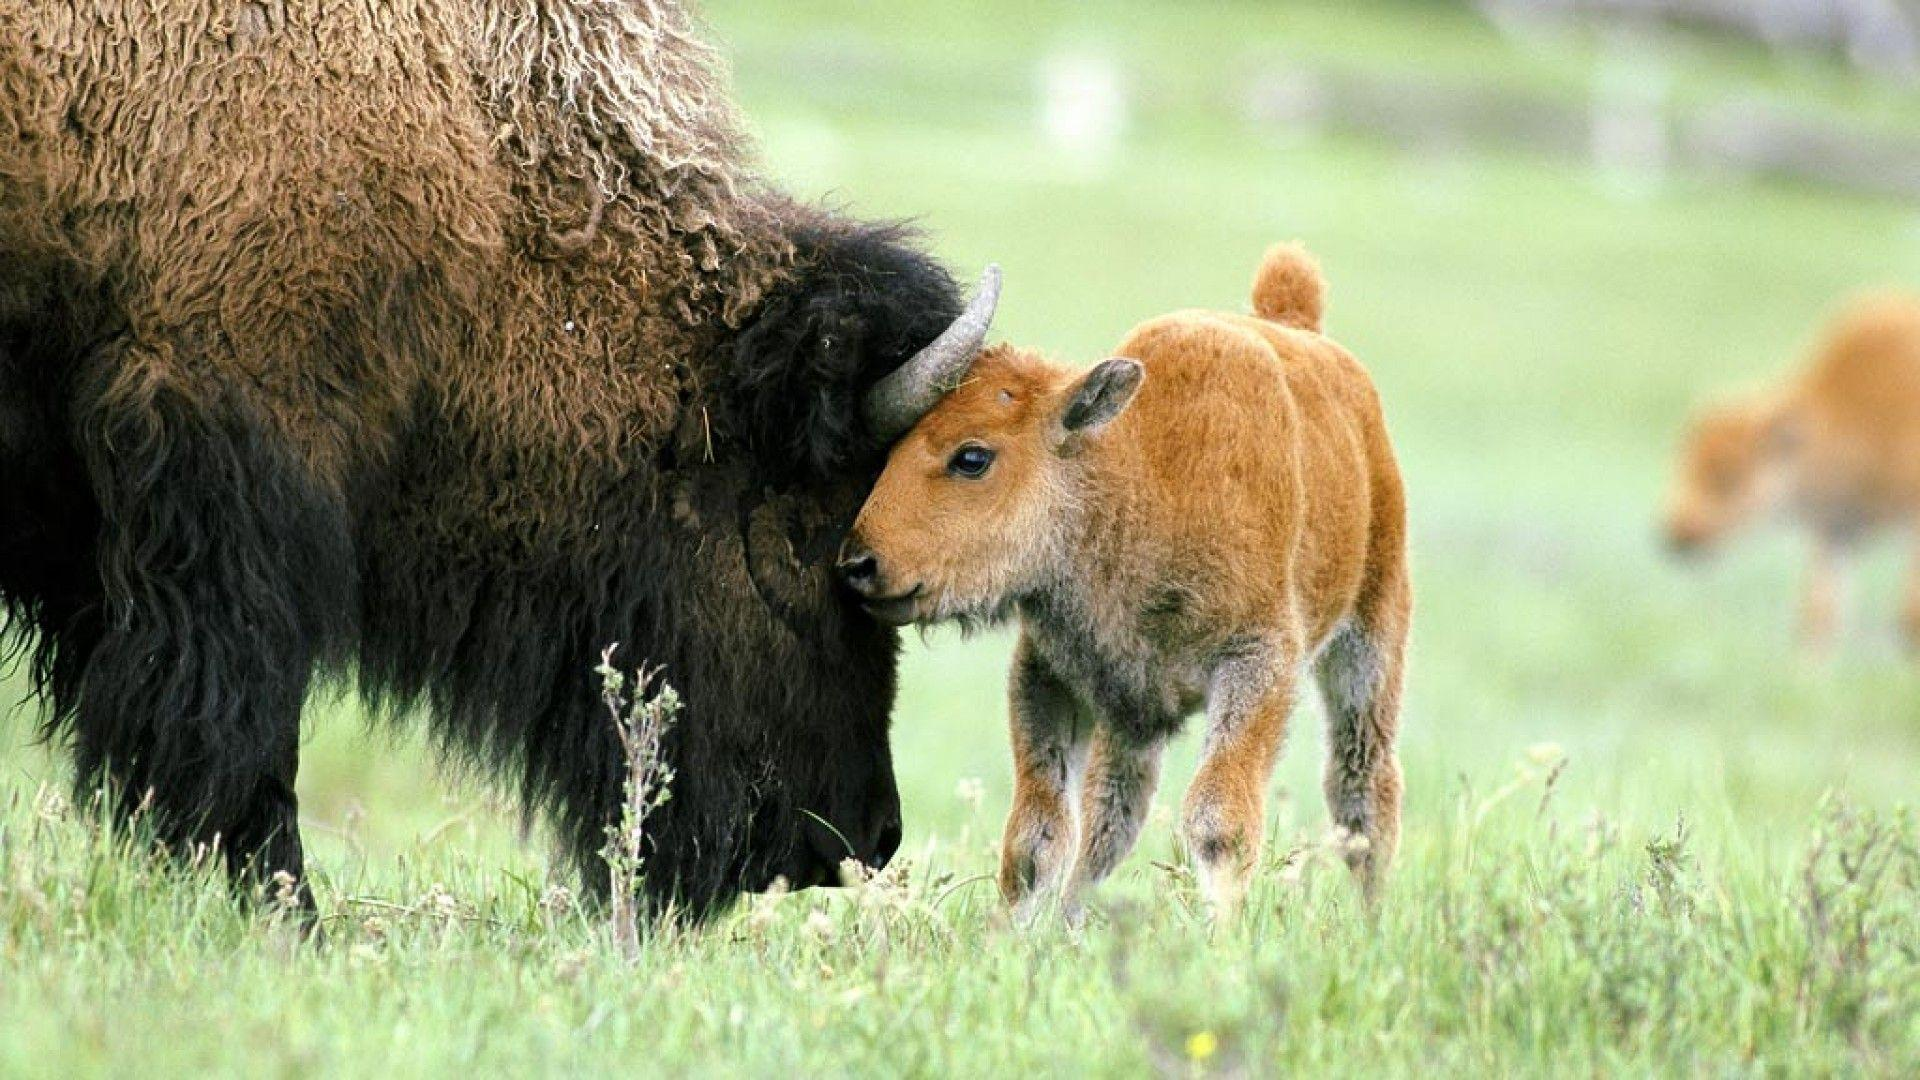 American bison baby wallpapers